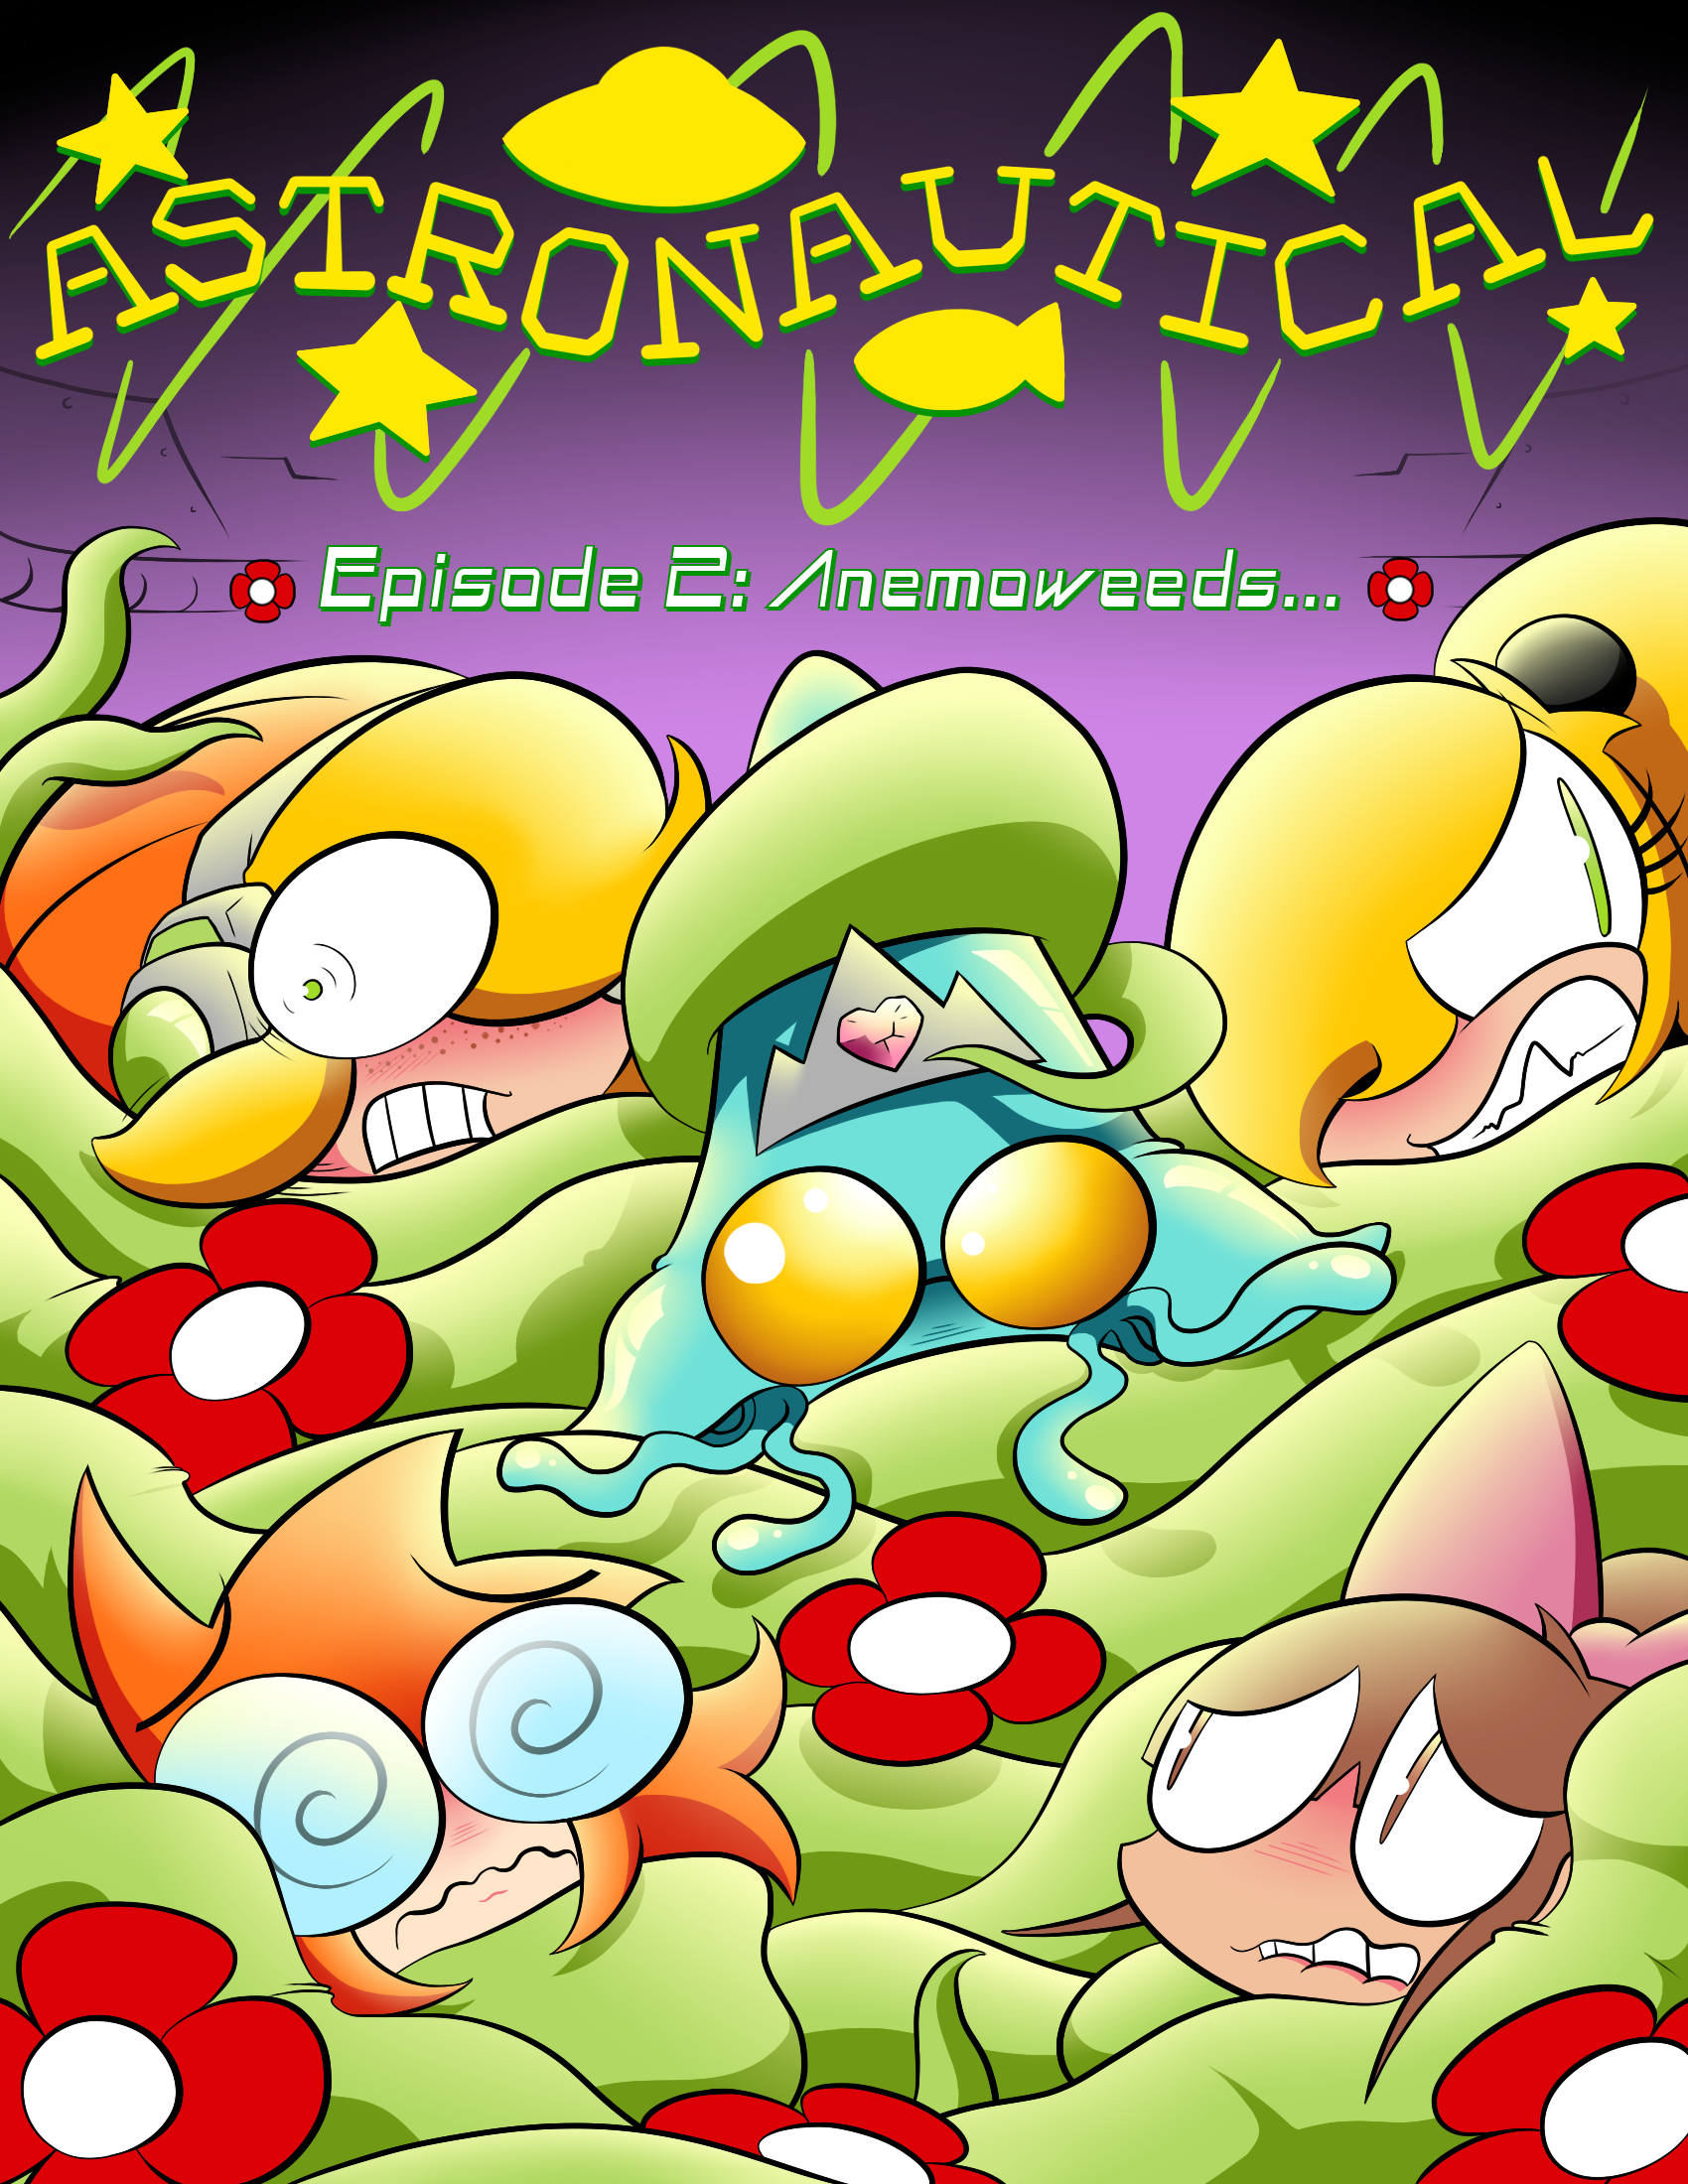 Astronautical Episode 2 Cover Revamp